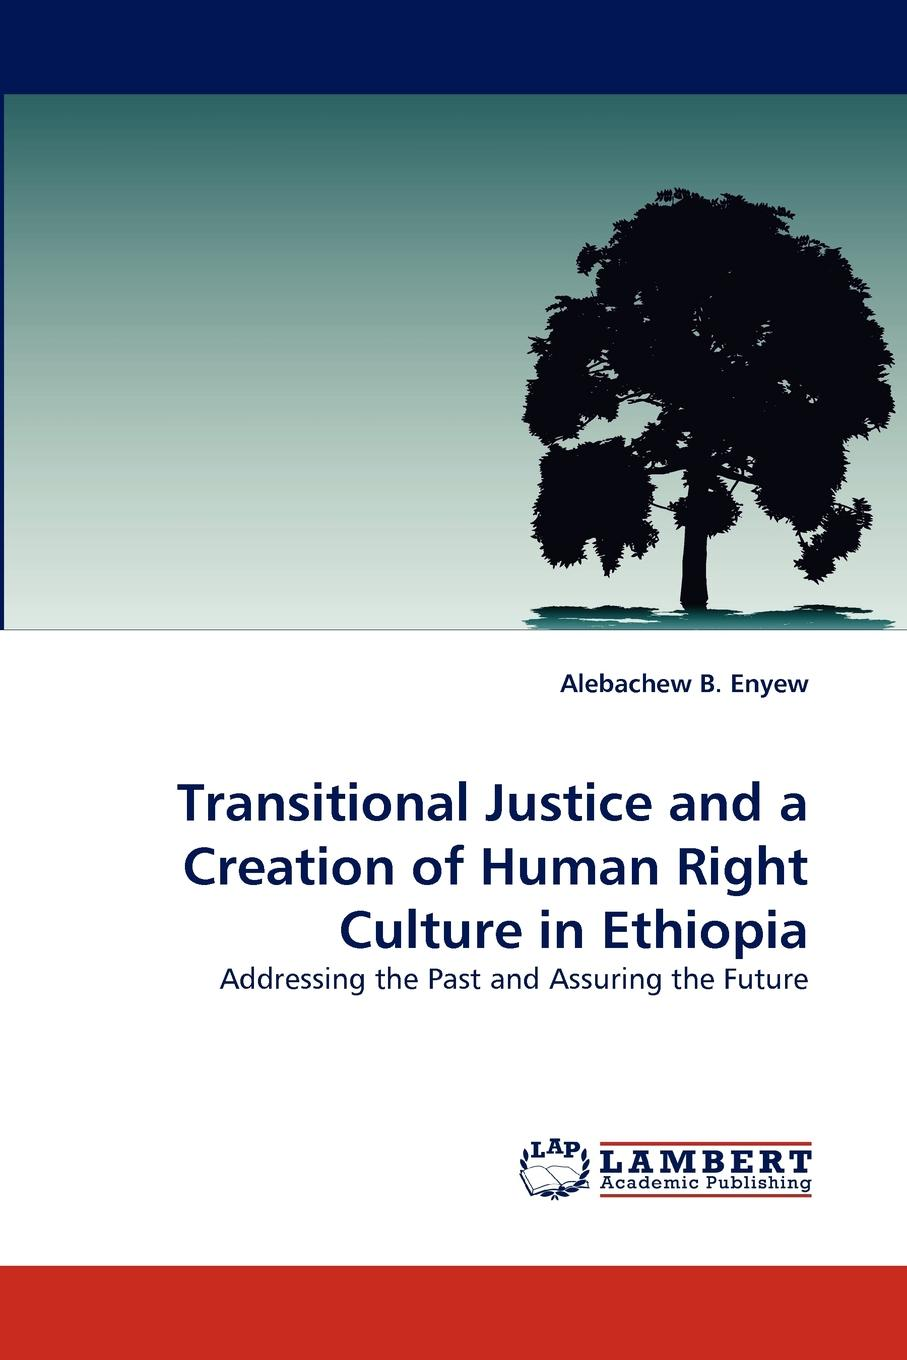 Alebachew B. Enyew Transitional Justice and a Creation of Human Right Culture in Ethiopia цена